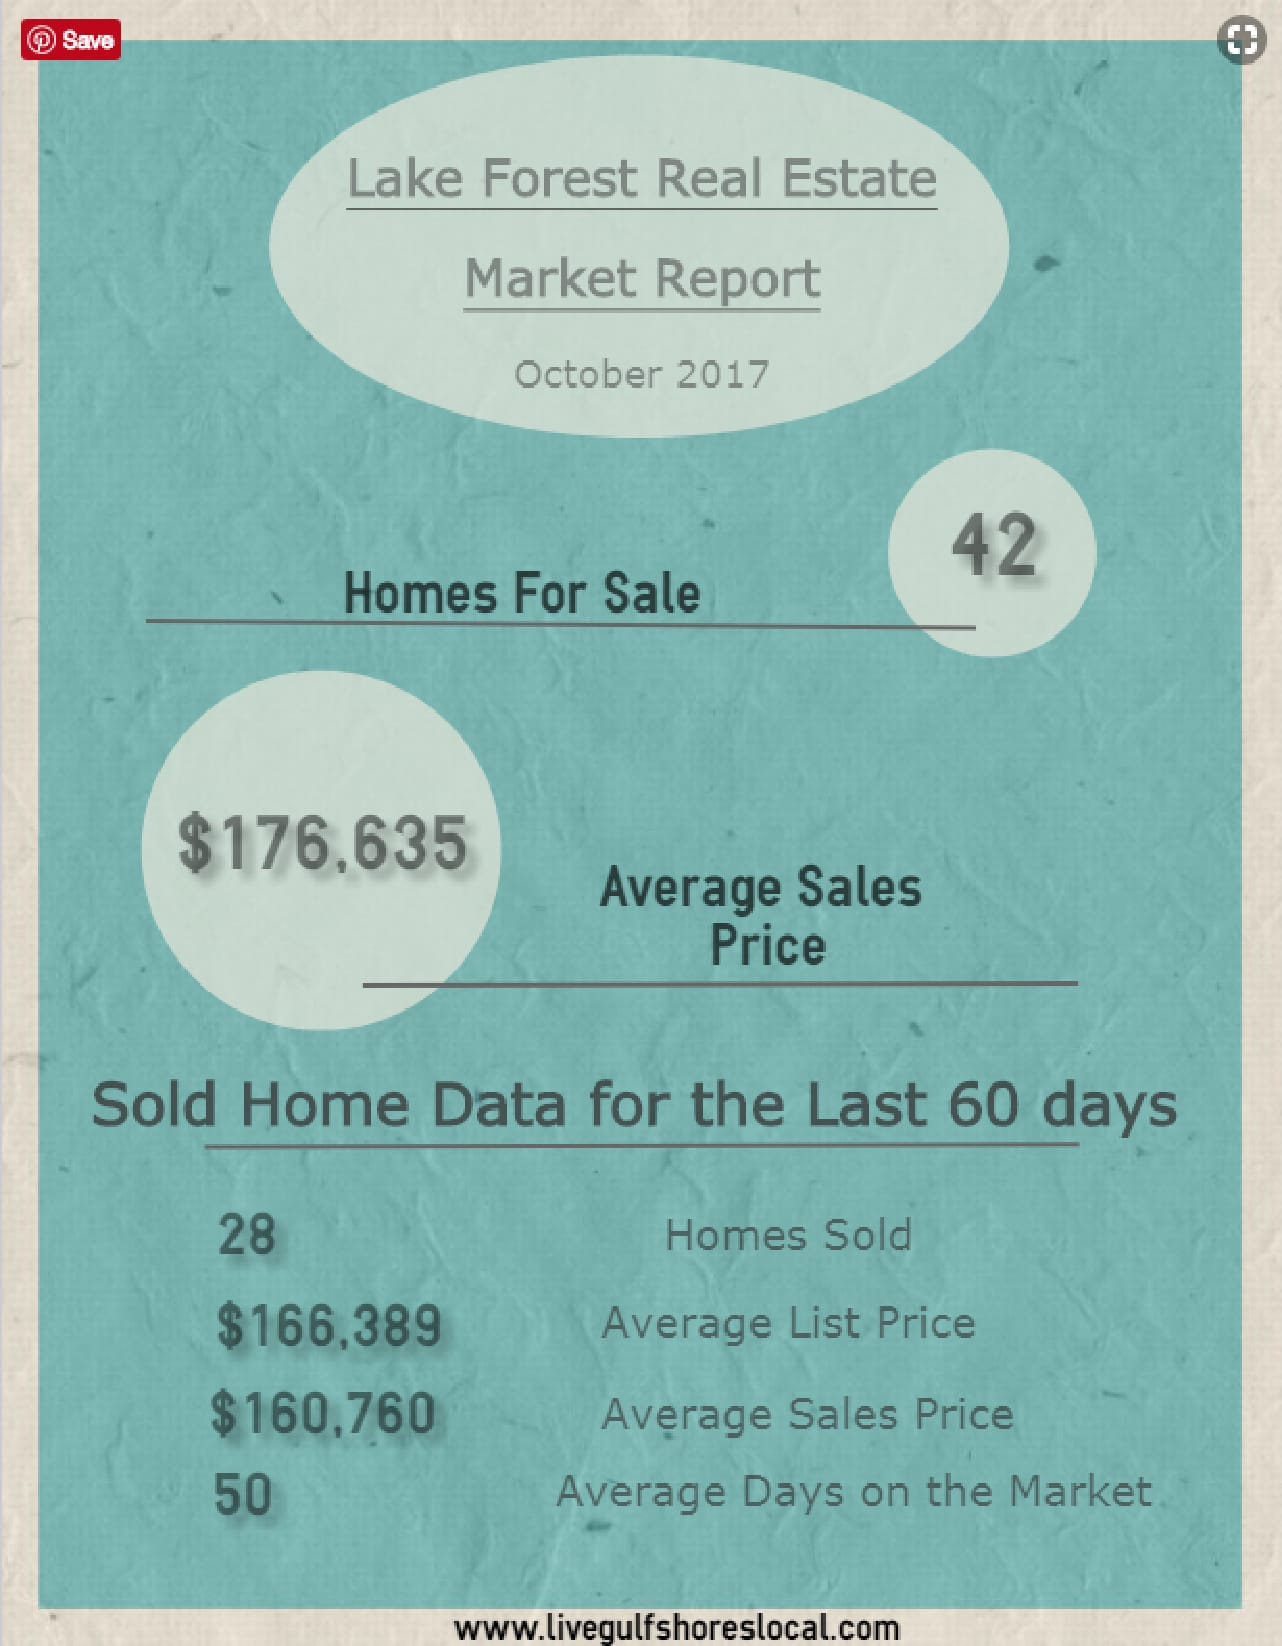 Lake Forest Real Estate Market Update - Oct 2017